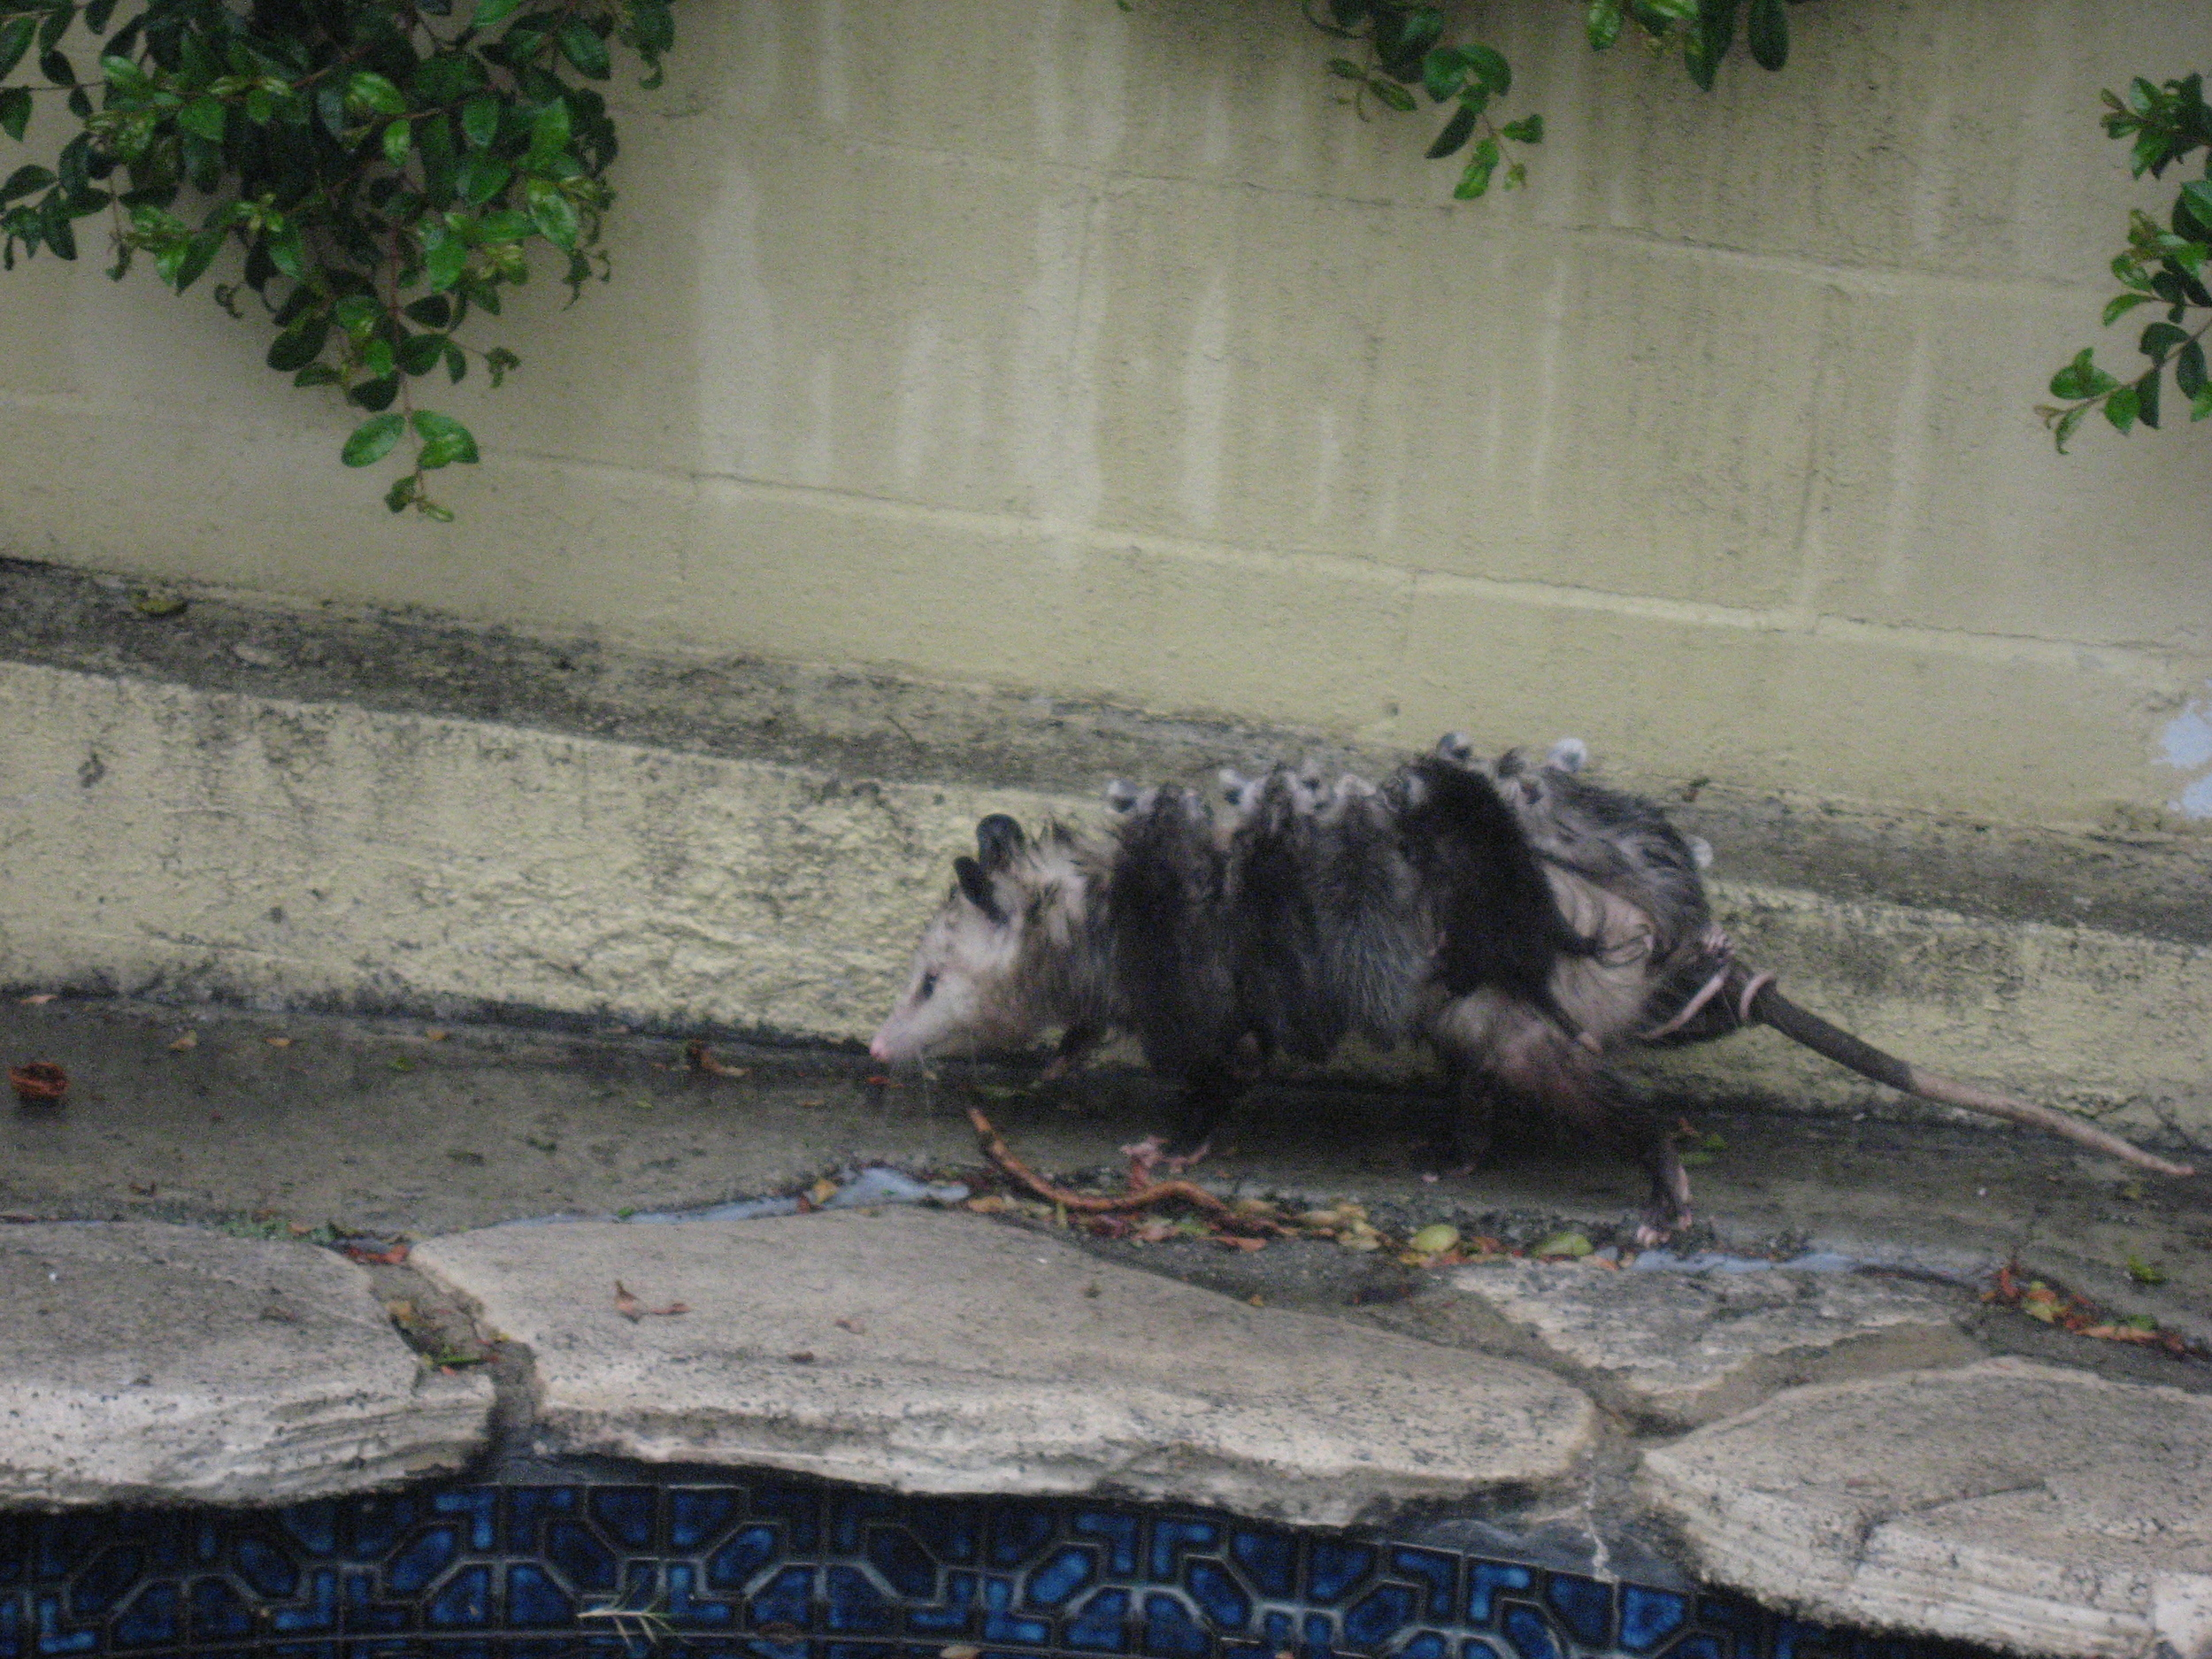 Spotted this morning in our backyard. A possum, about the size of a medium housecat, bearing on her back at least 9 babies, each the size of a large mouse. Something about the way the tail looks makes this animal slightly revolting to me. But the way she cared for her children, and the way she limped, and the way she was clearly looking for a shelter from the driving rain, and the fact that I was holding my own small child in my arms, made me feel emotional. This has been one of the side effects of fatherhood. I'm not as robotic as I one was.